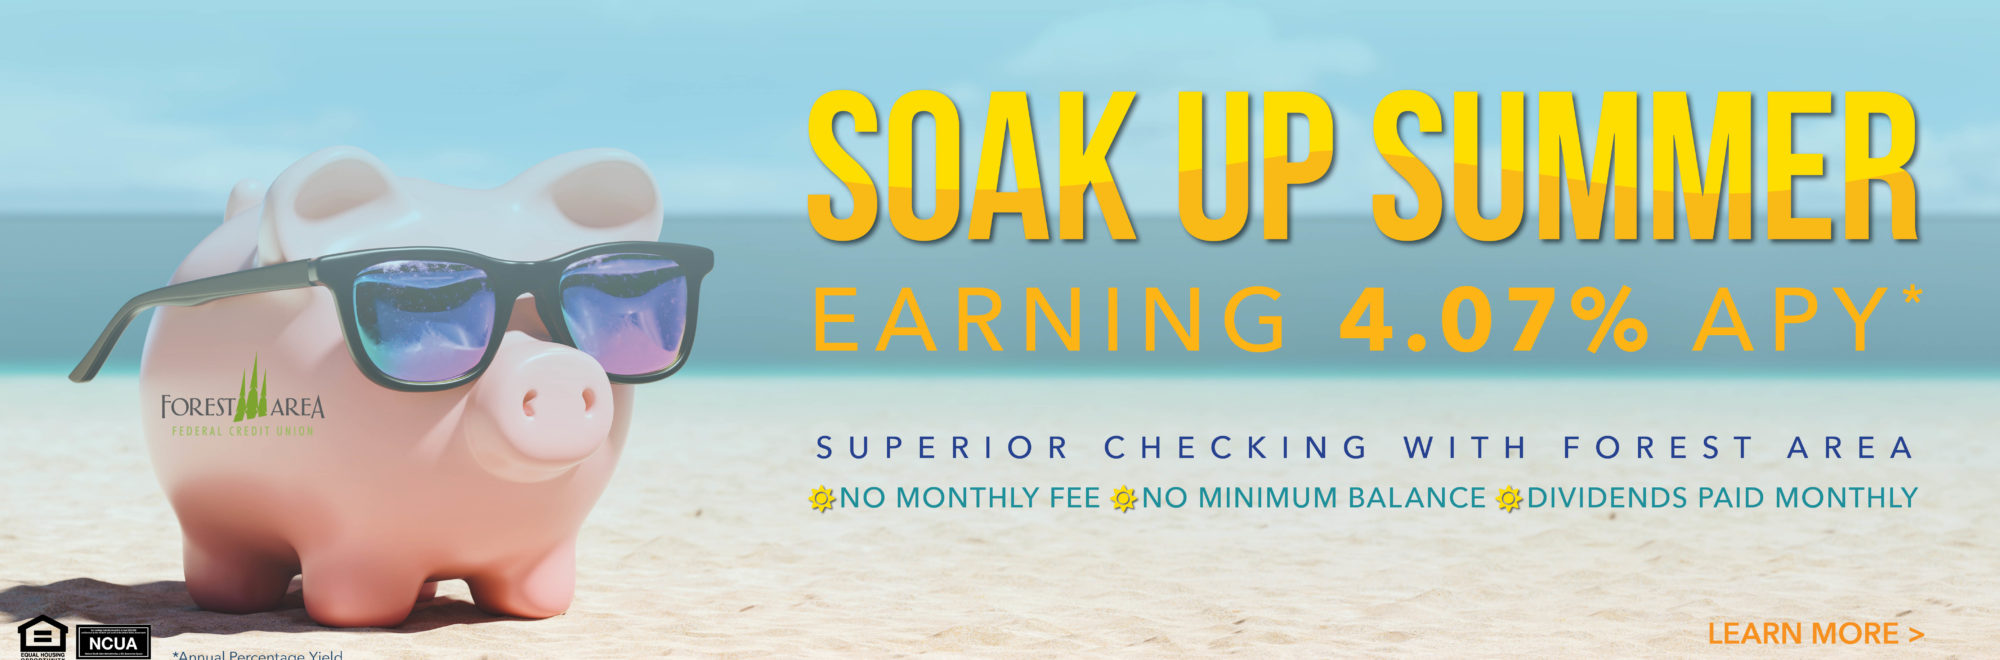 Learn more about how you can earn up to 4.07% on your first $15,000 with Superior Checking